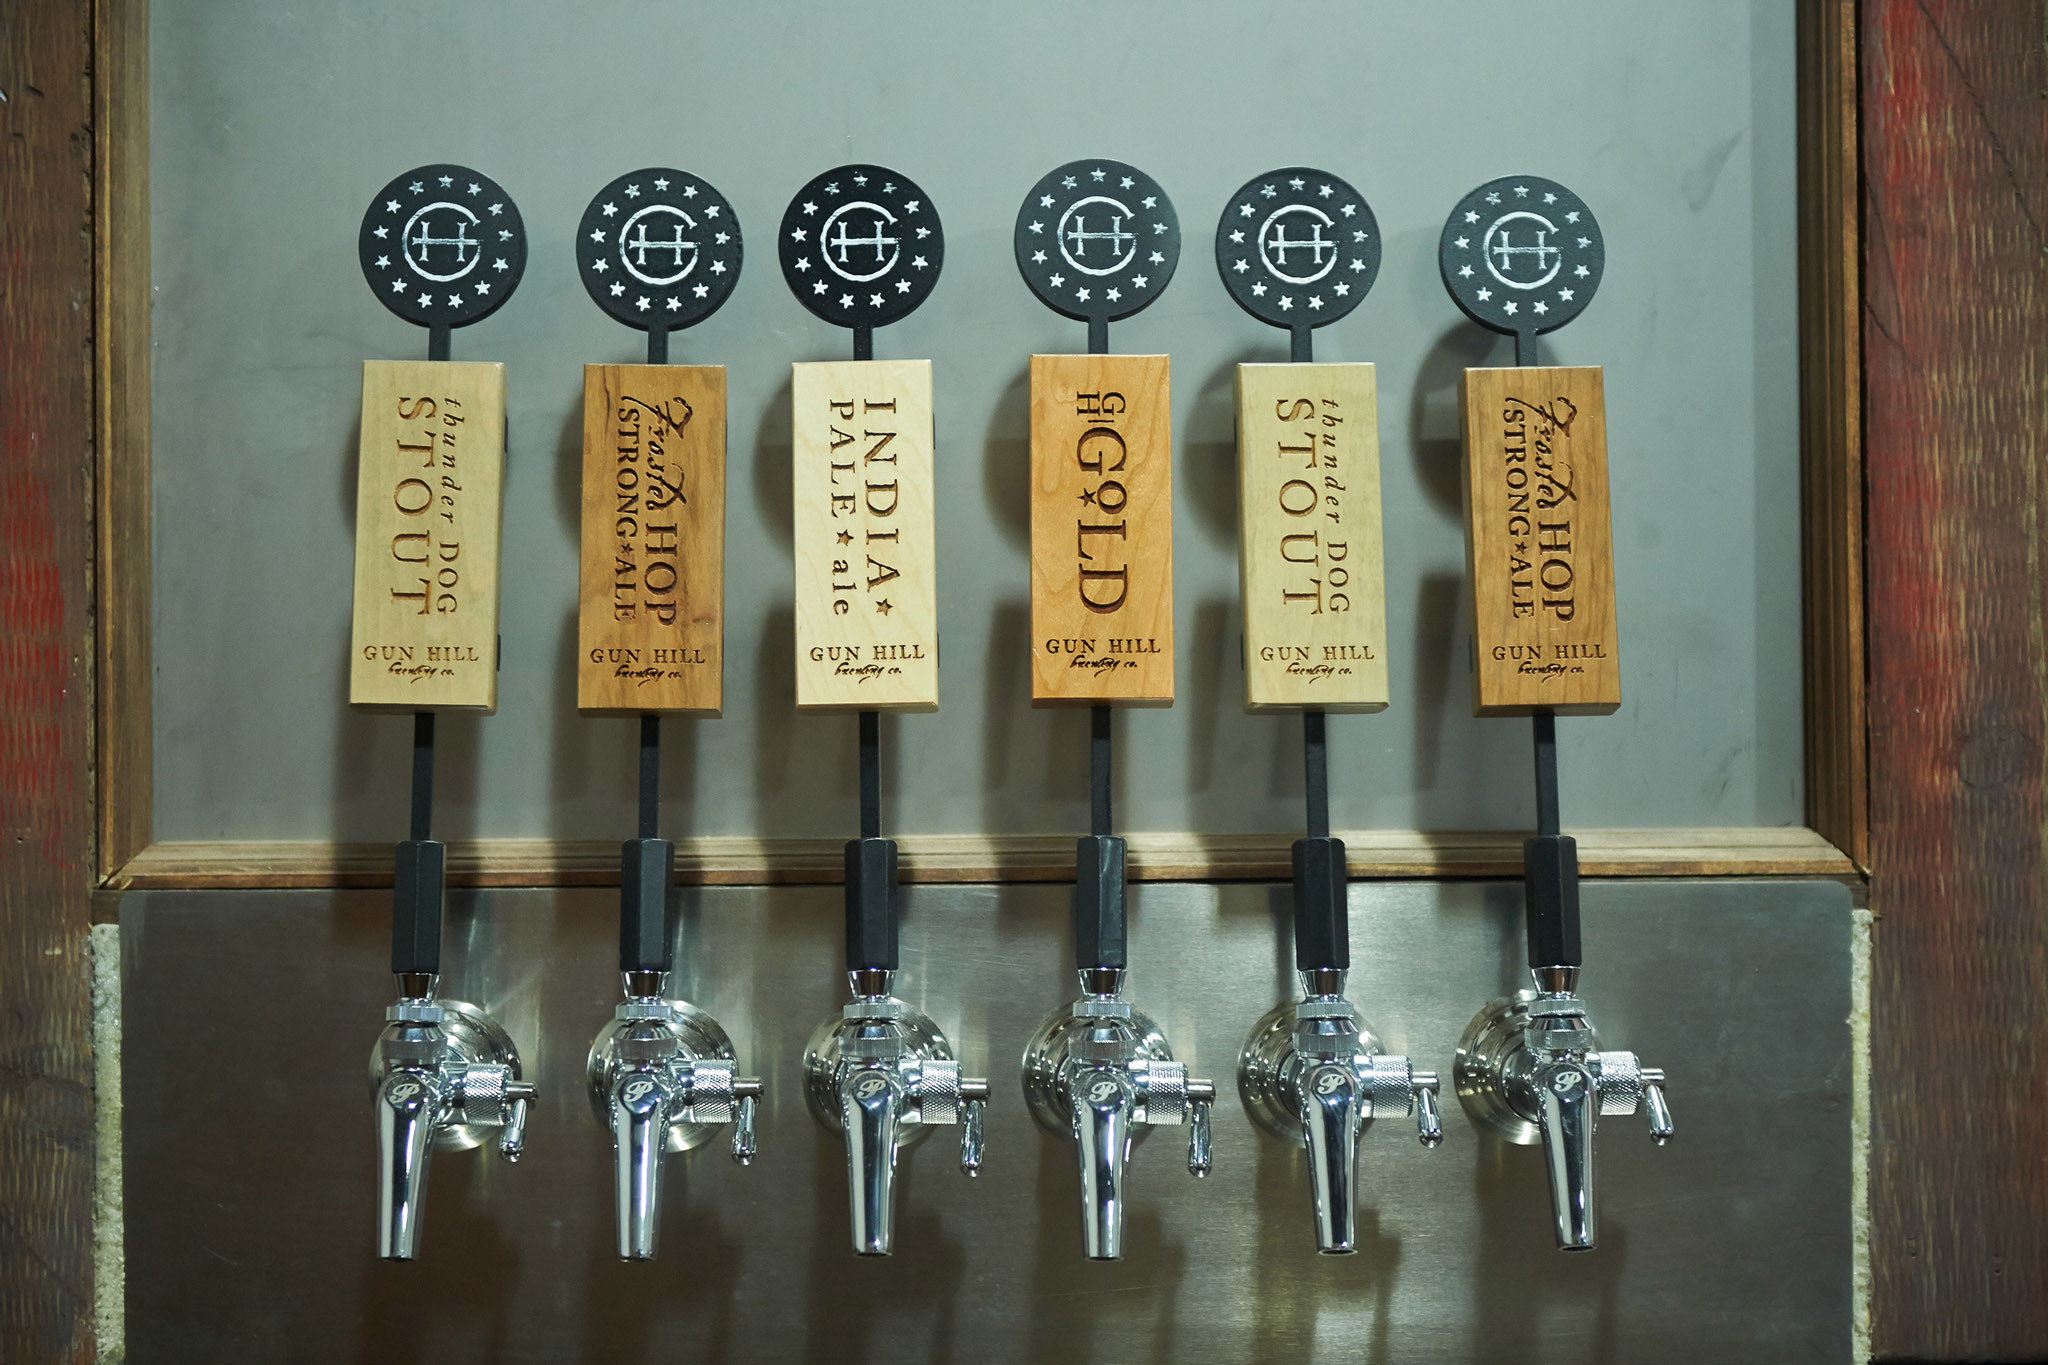 New breweries (2014)